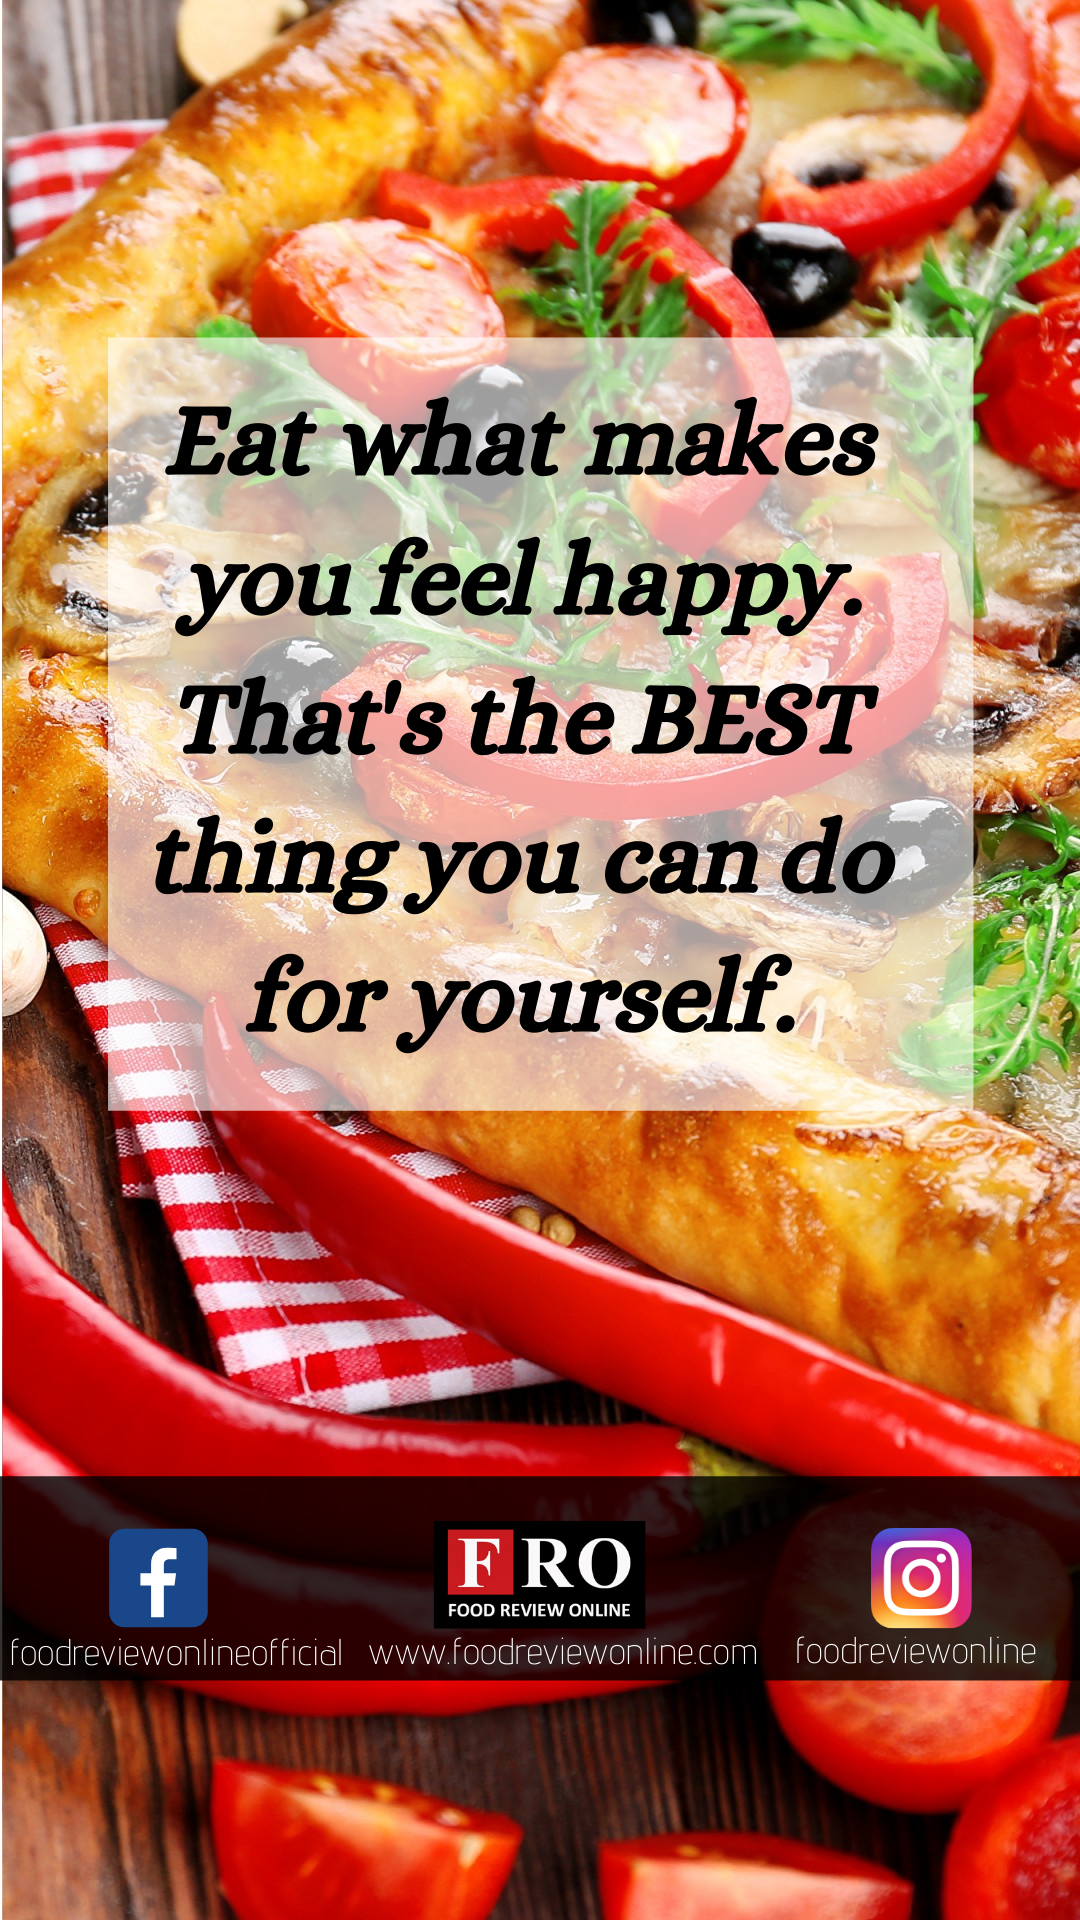 #foodreviewonline #kailashshahaniofficial #foodie #foodart #foodnetwork #foodgram #foodlovers #fooddiary #quoteforfoodies #foodquotes #Wednesdaythoughts #foodiewednesday #mumbaifoodie #foodsofmumbai #stayhealthy #picoftheday #foodoftheday #yummy #foodphotography